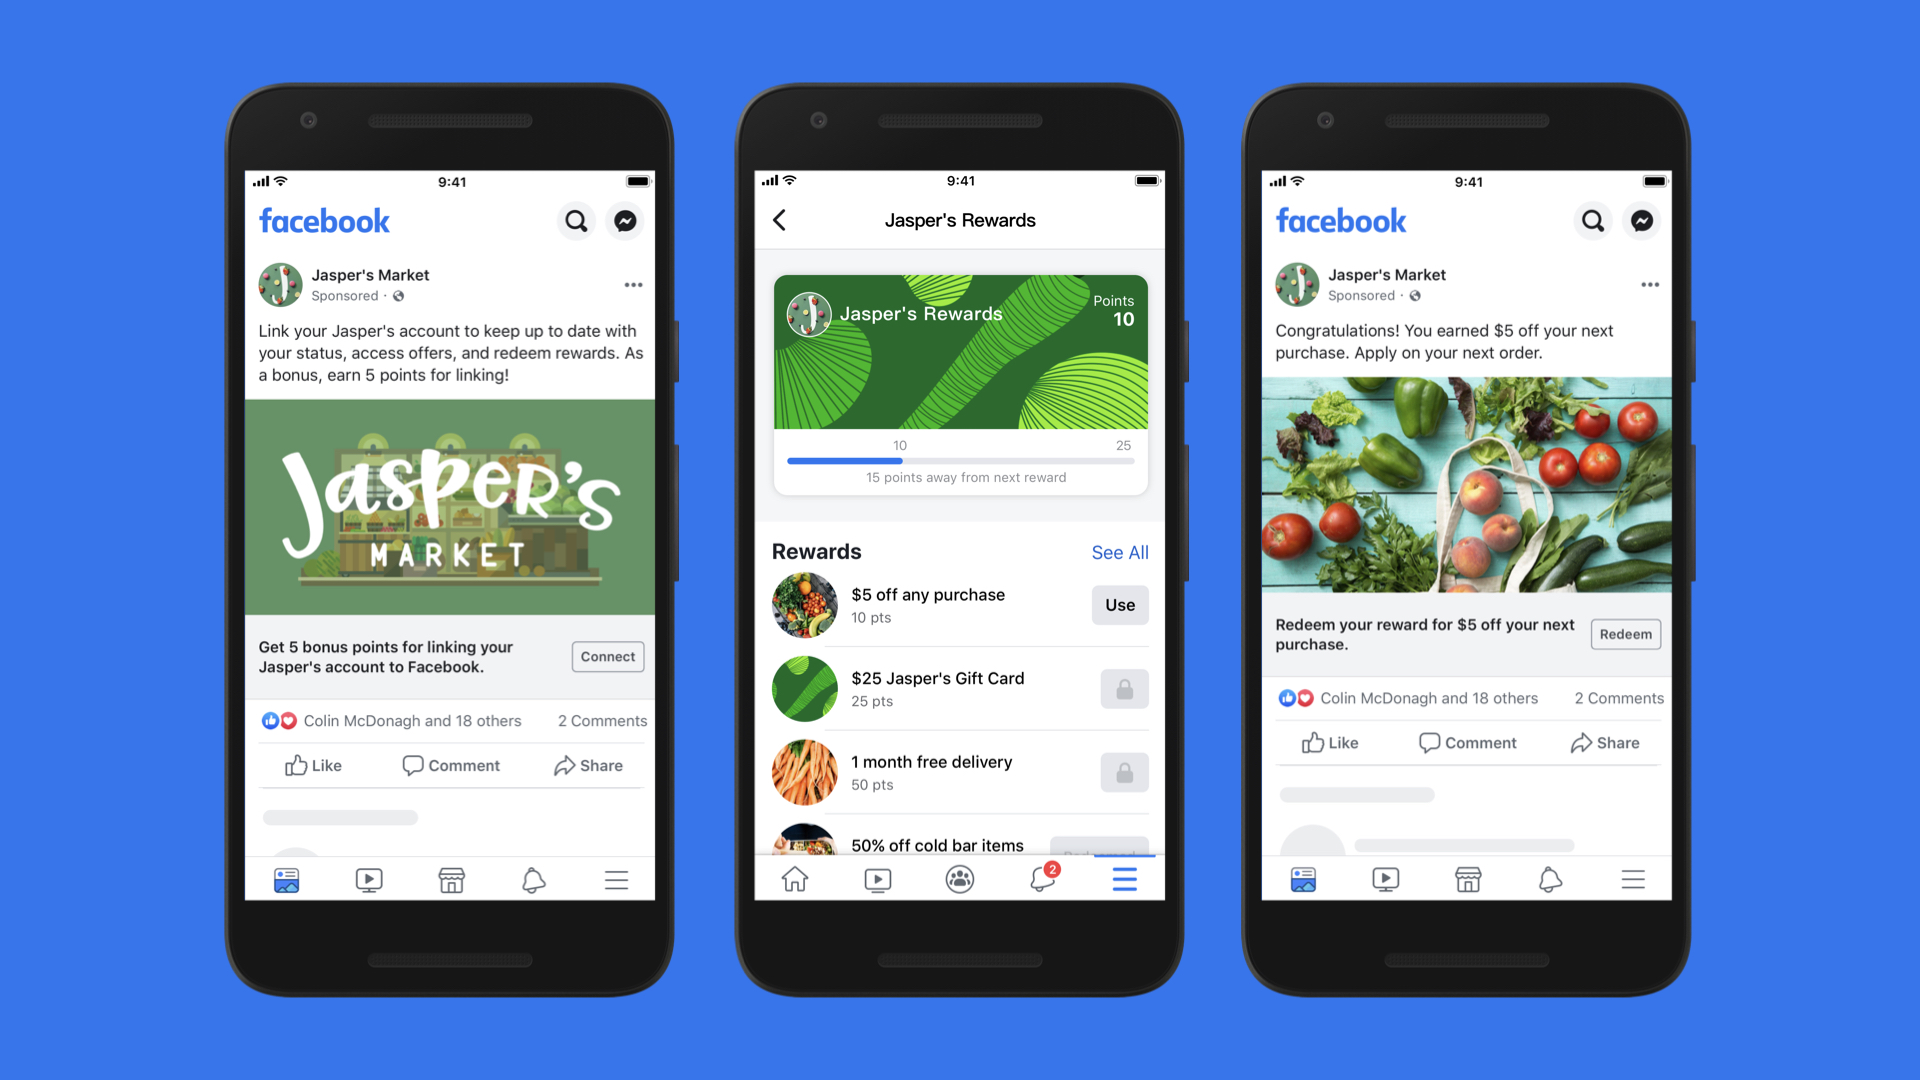 Screenshots of connected loyalty programs on Facebook